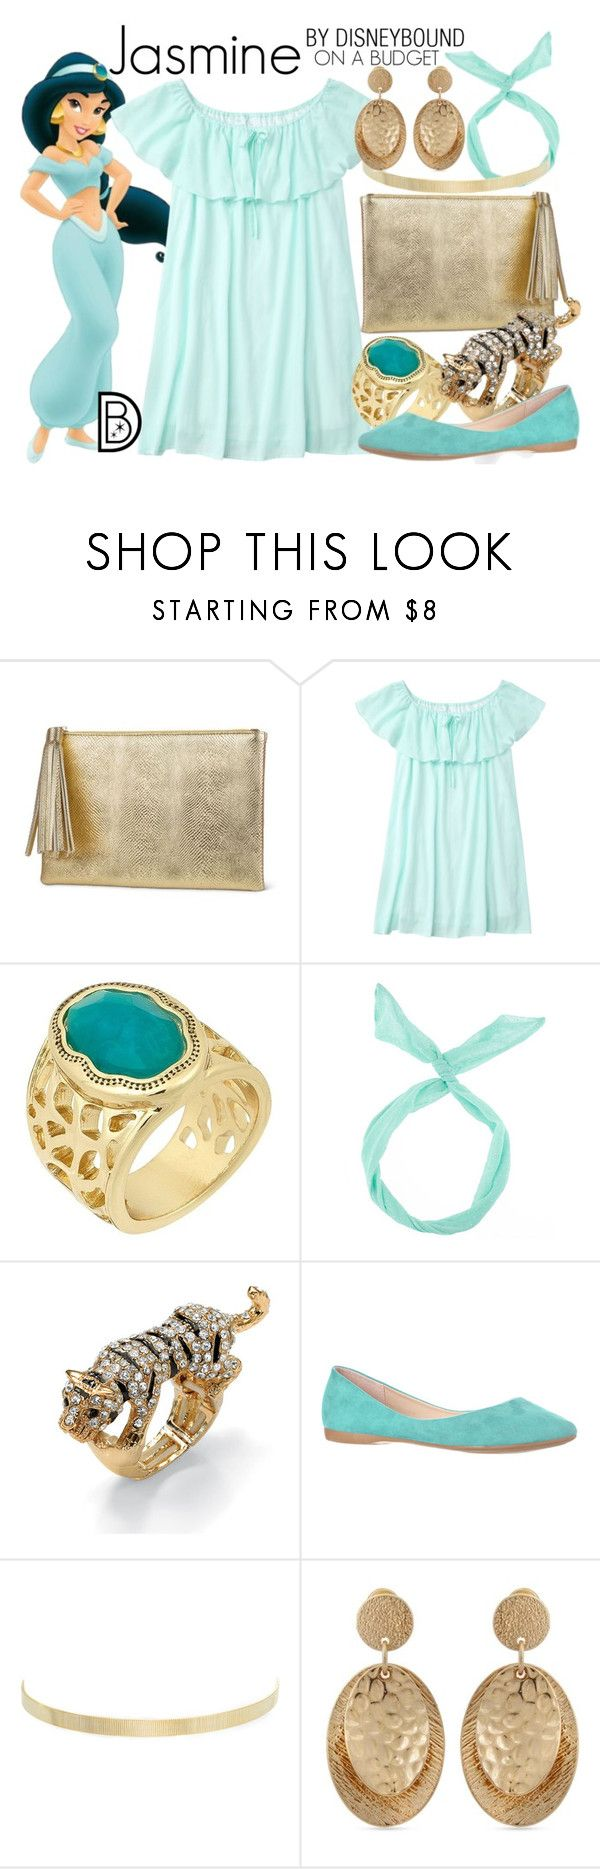 """""""Jasmine"""" by leslieakay ❤ liked on Polyvore featuring Jessica McClintock, Laundry by Shelli Segal, Palm Beach Jewelry, Kenneth Jay Lane, Erica Lyons, disney, disneybound and disneycharacter"""